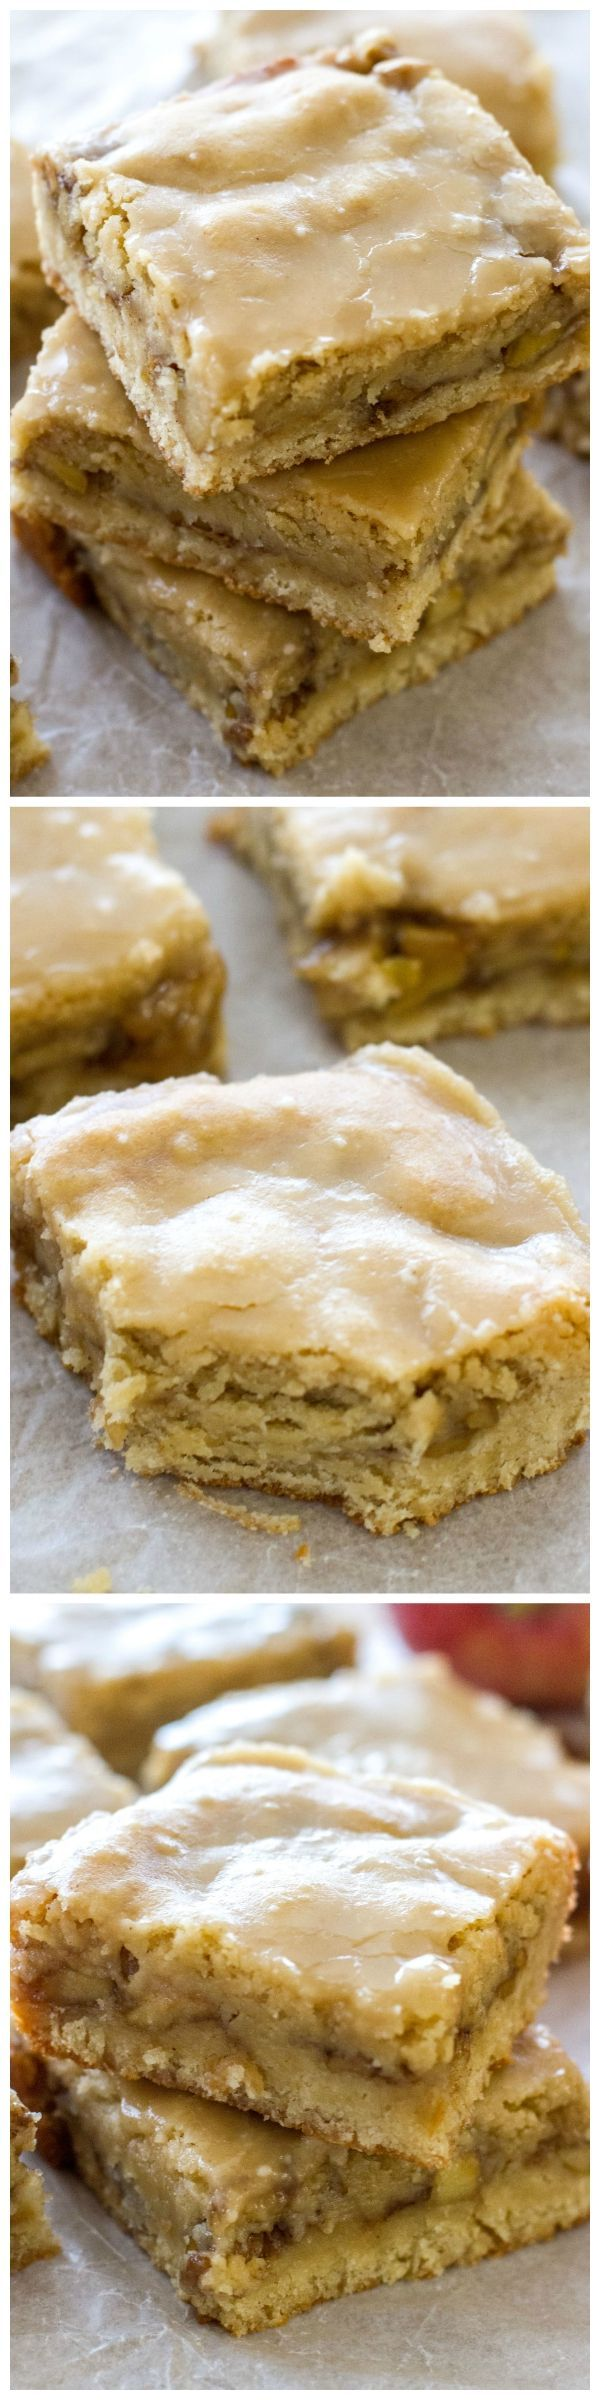 Maple Glazed Apple Blondies - These chewy apple blondies taste like apple pie and are covered in a sweet maple glaze. You're sure to fall in love. #blondies